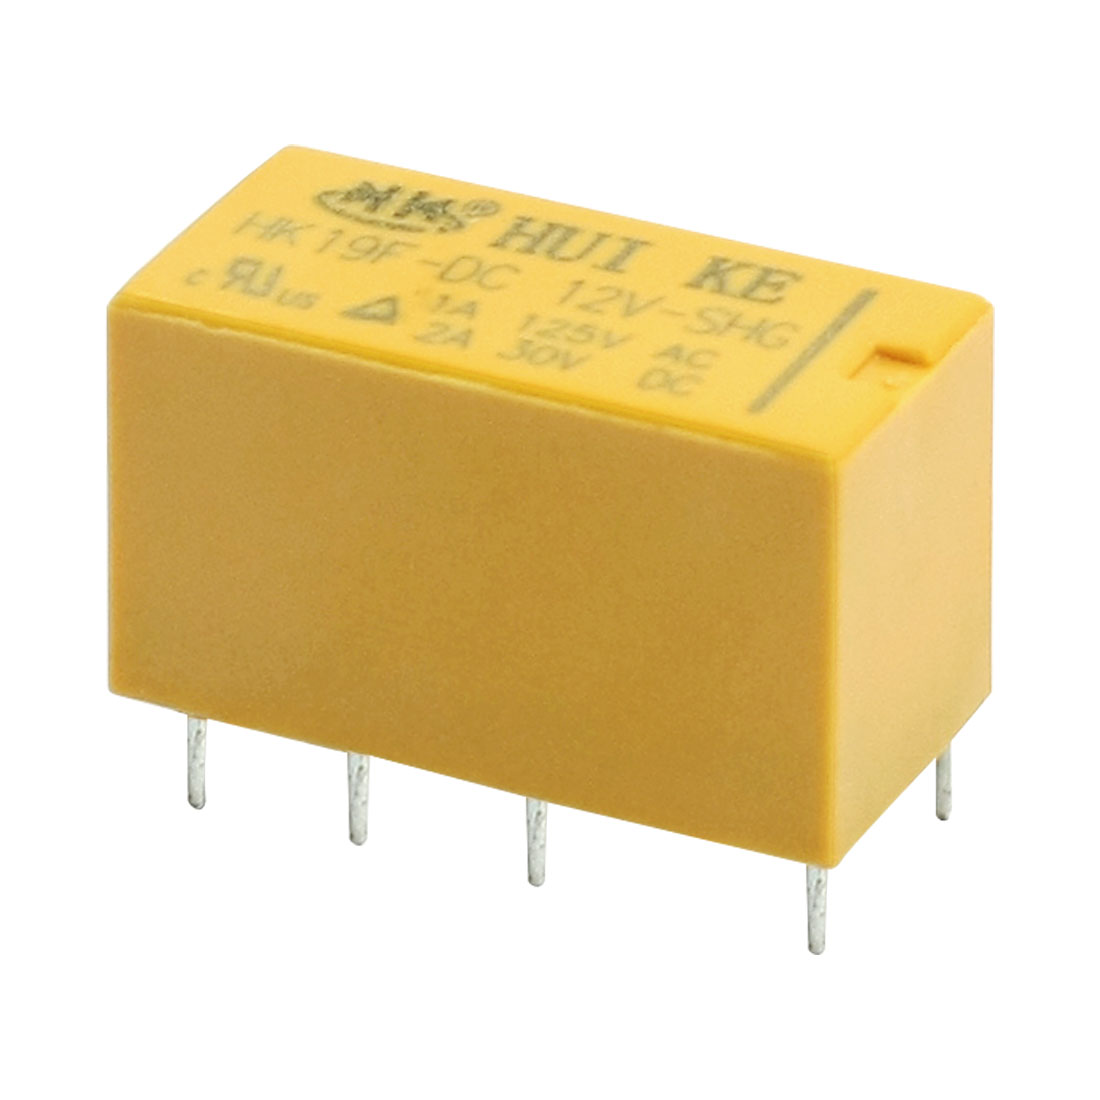 HK19F-DC12V-SHG DC 12V Coil DPDT 8Pin PCB in Mounting General Purpose Realplay Power Relay Yellow